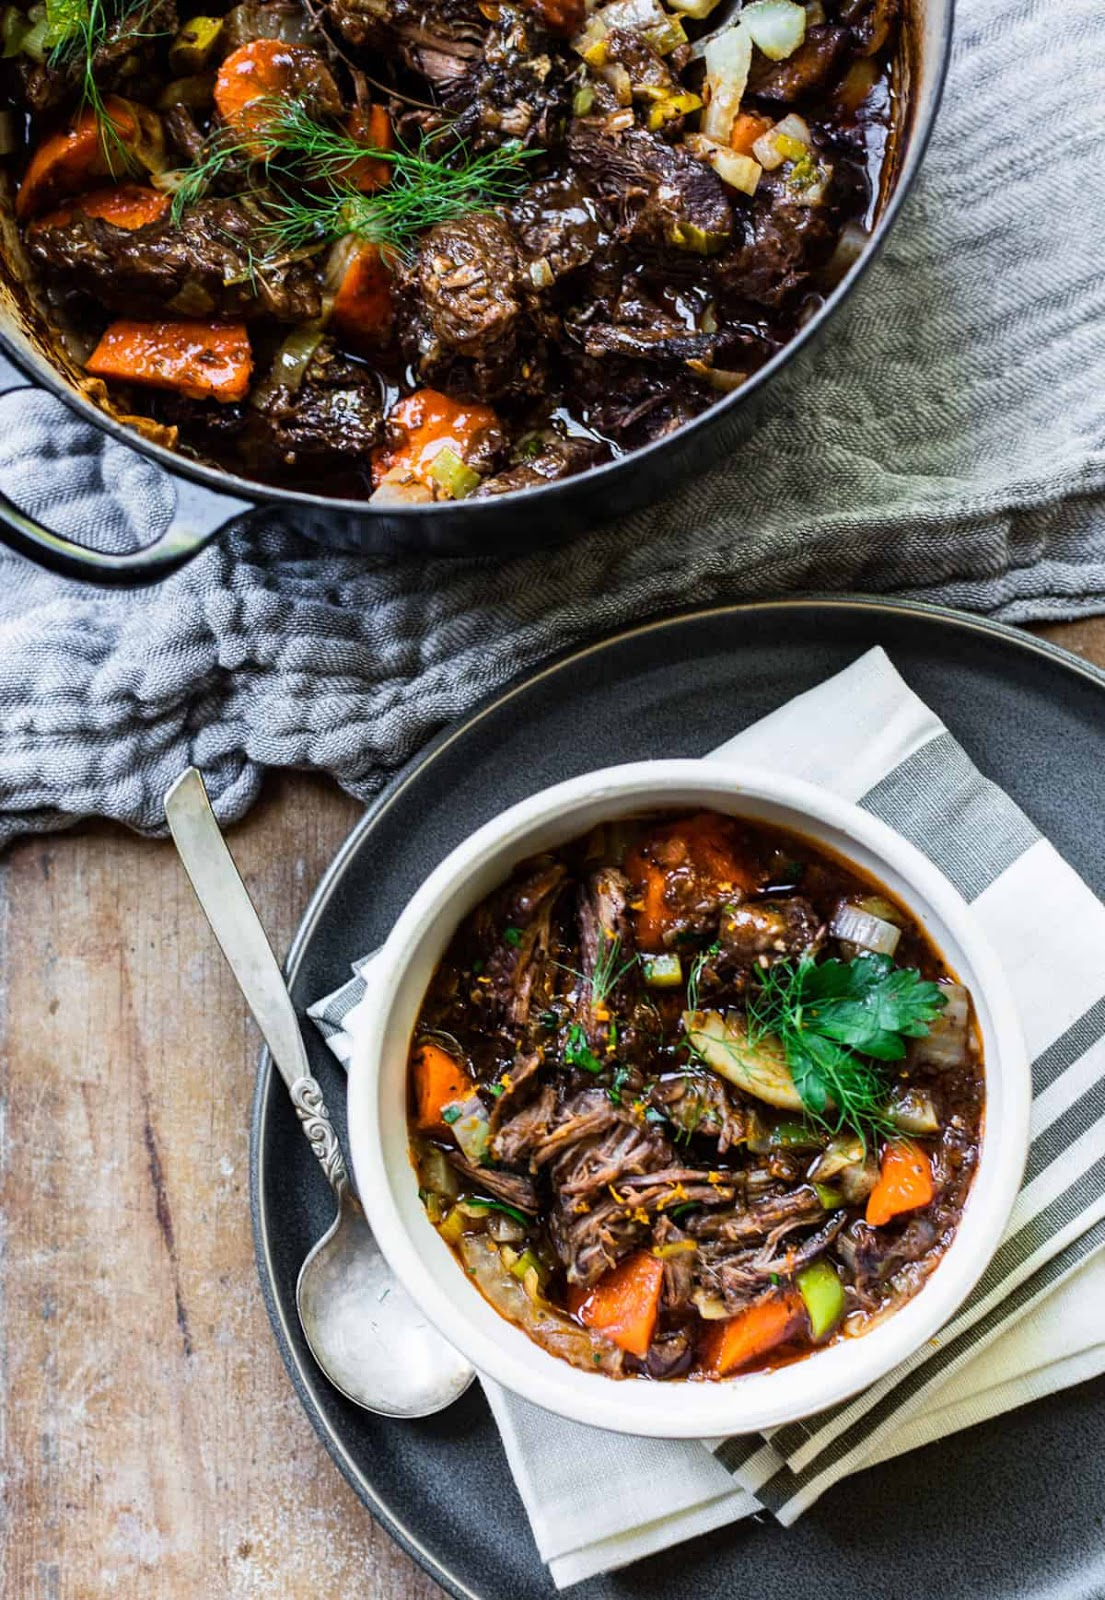 SLOW-COOKED RED WINE BEEF STEW #dinner #cooking